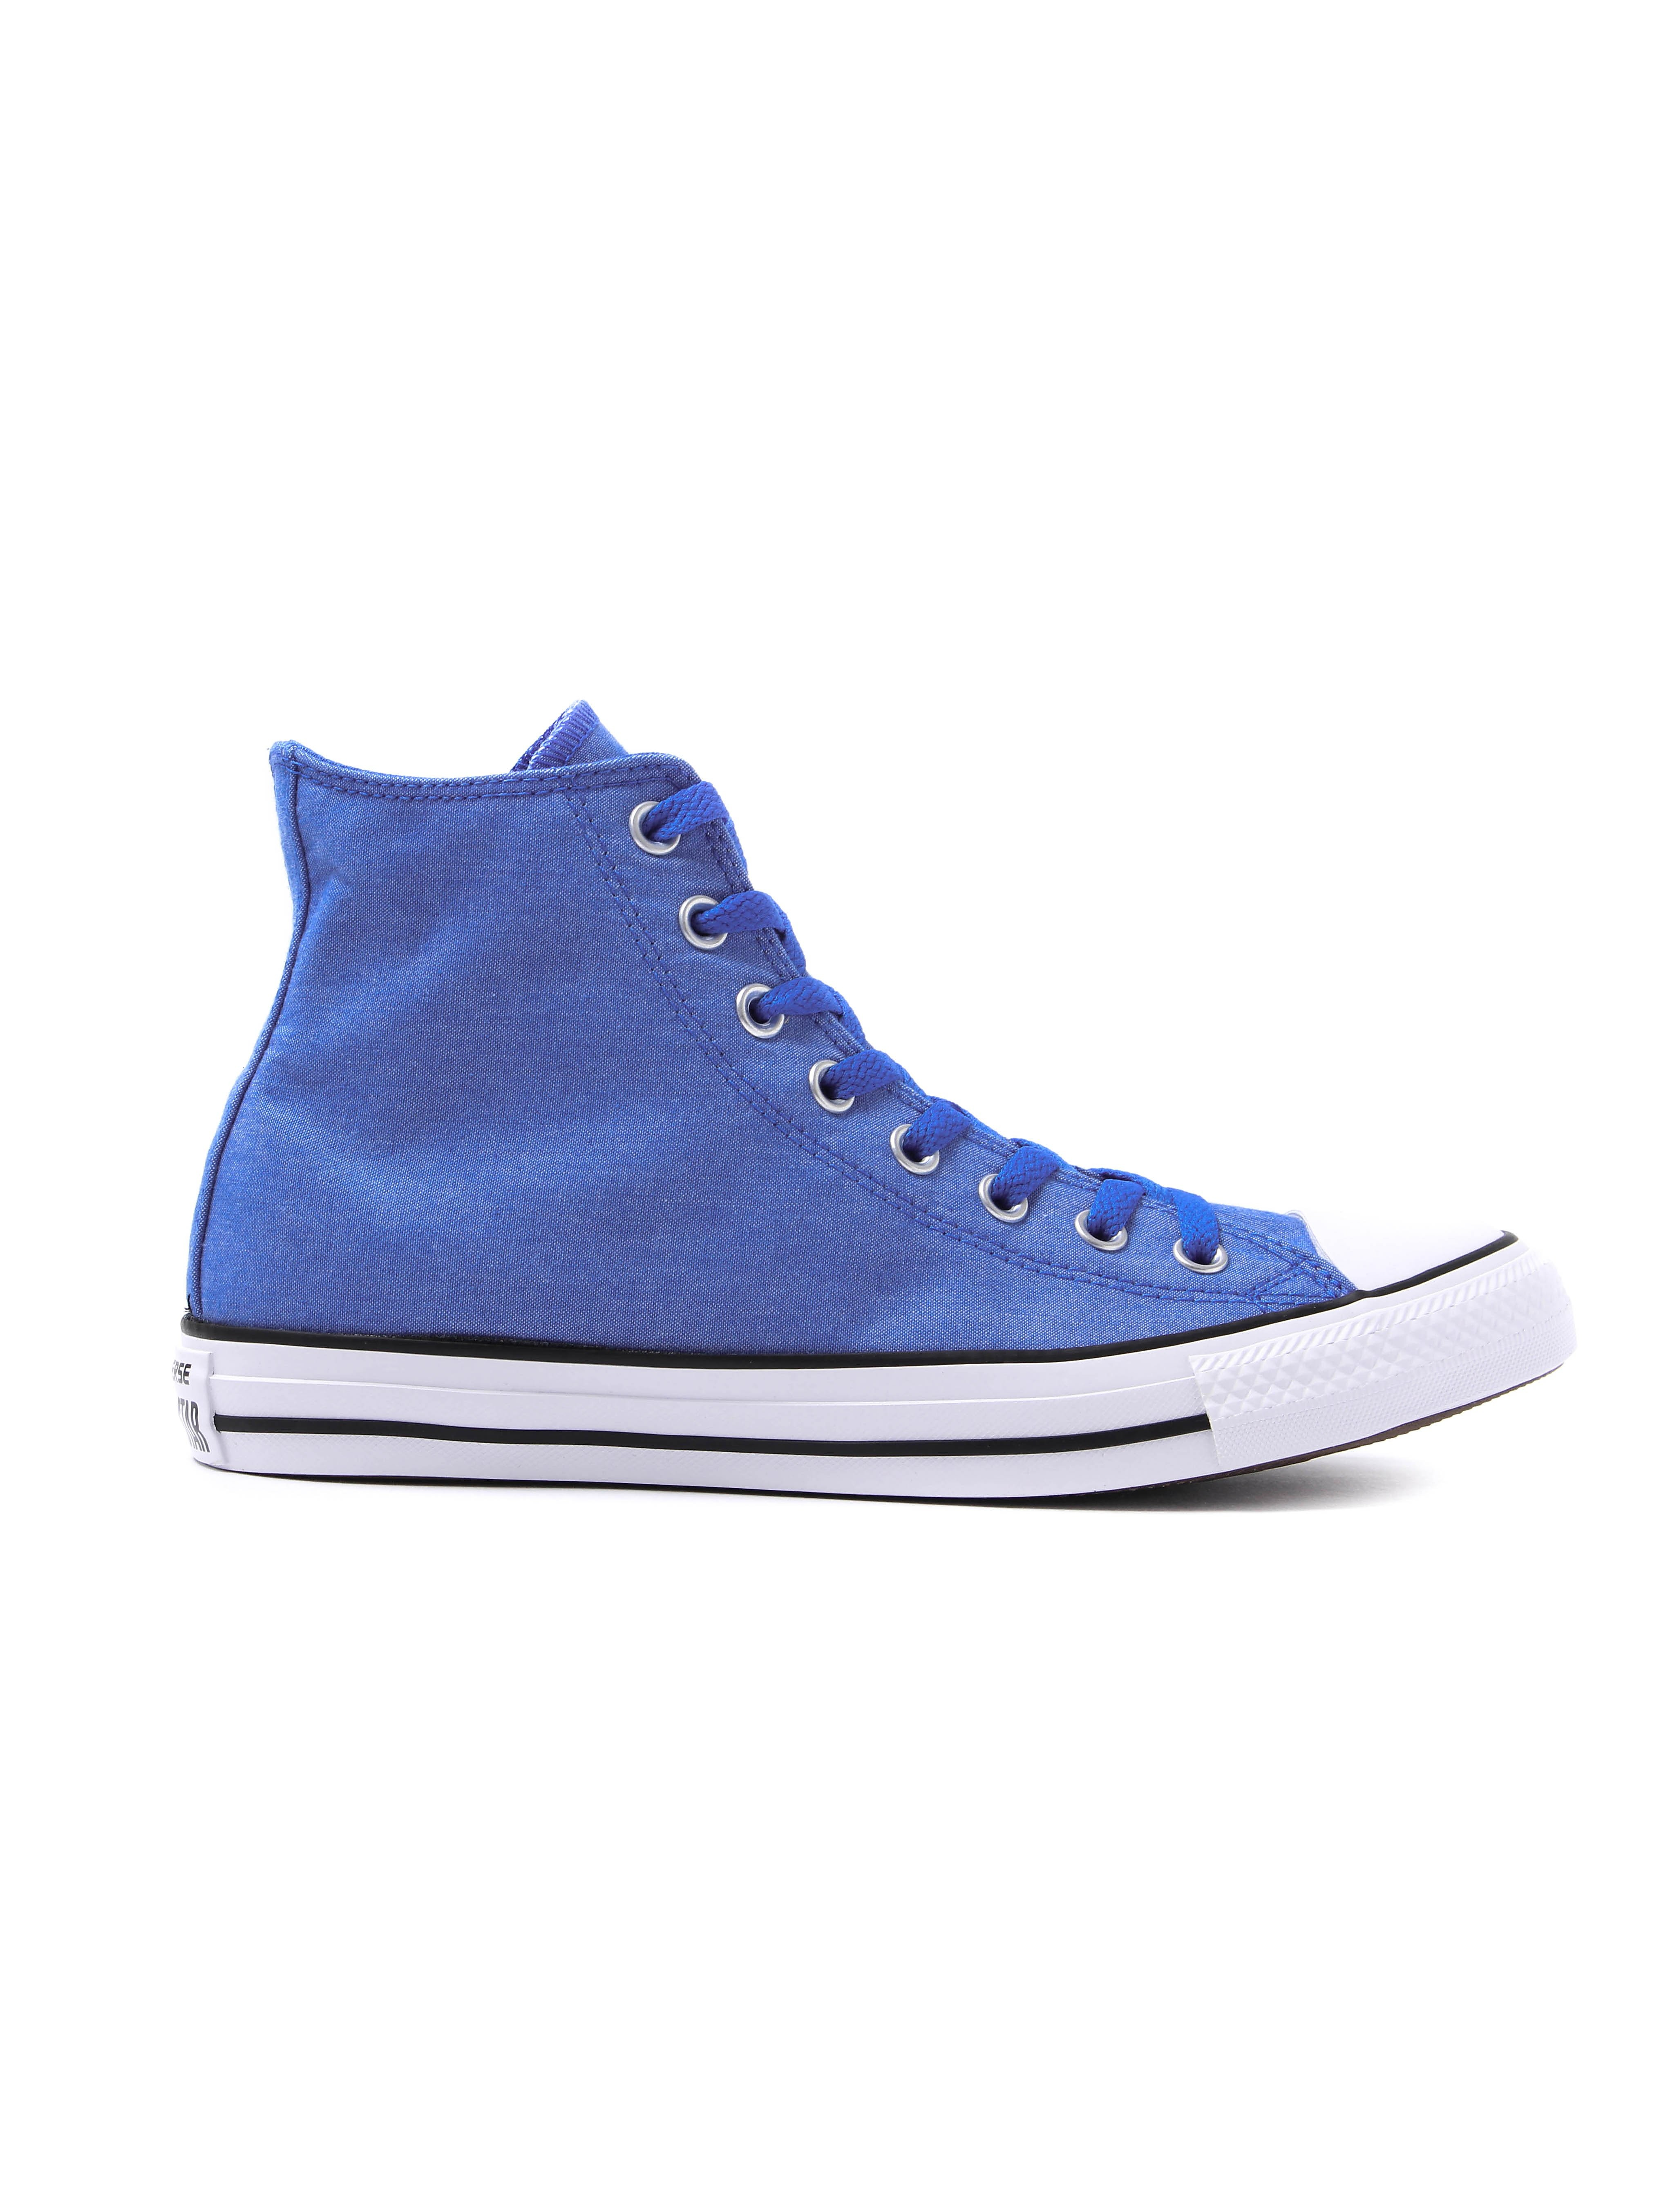 Converse Men's Chuck Taylor All Star HI Trainers - Blue Chambray